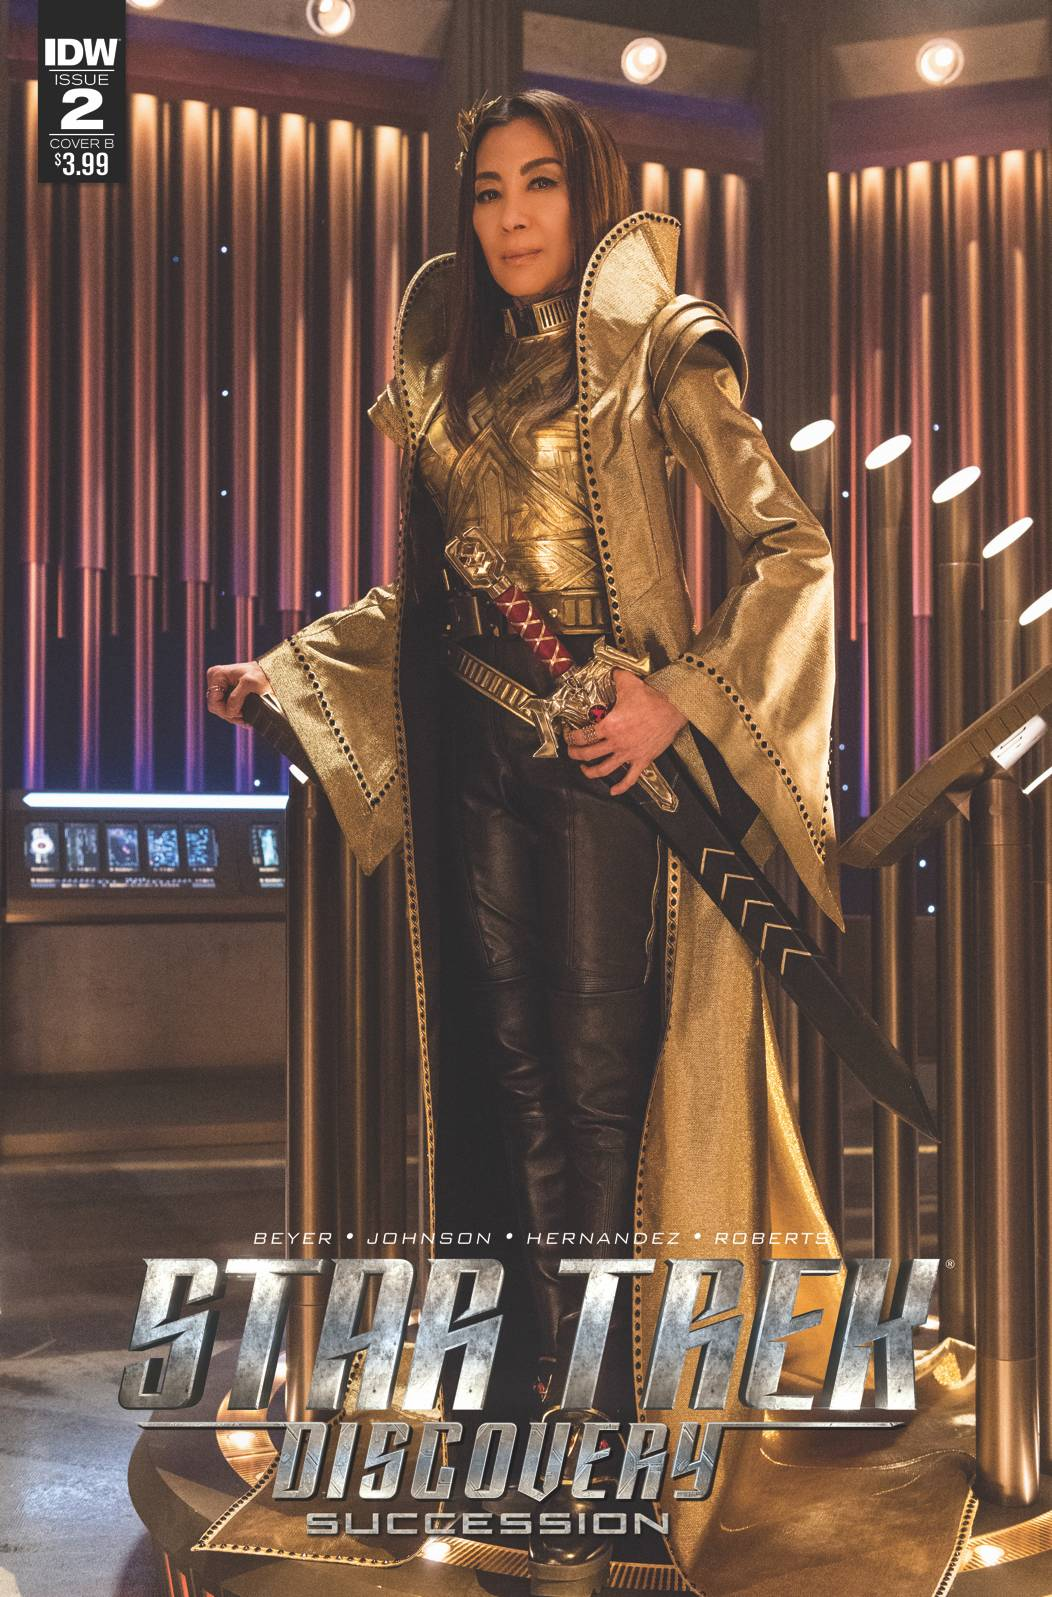 Star Trek: Discovery Succession (2018) #02 (Photo Variant)